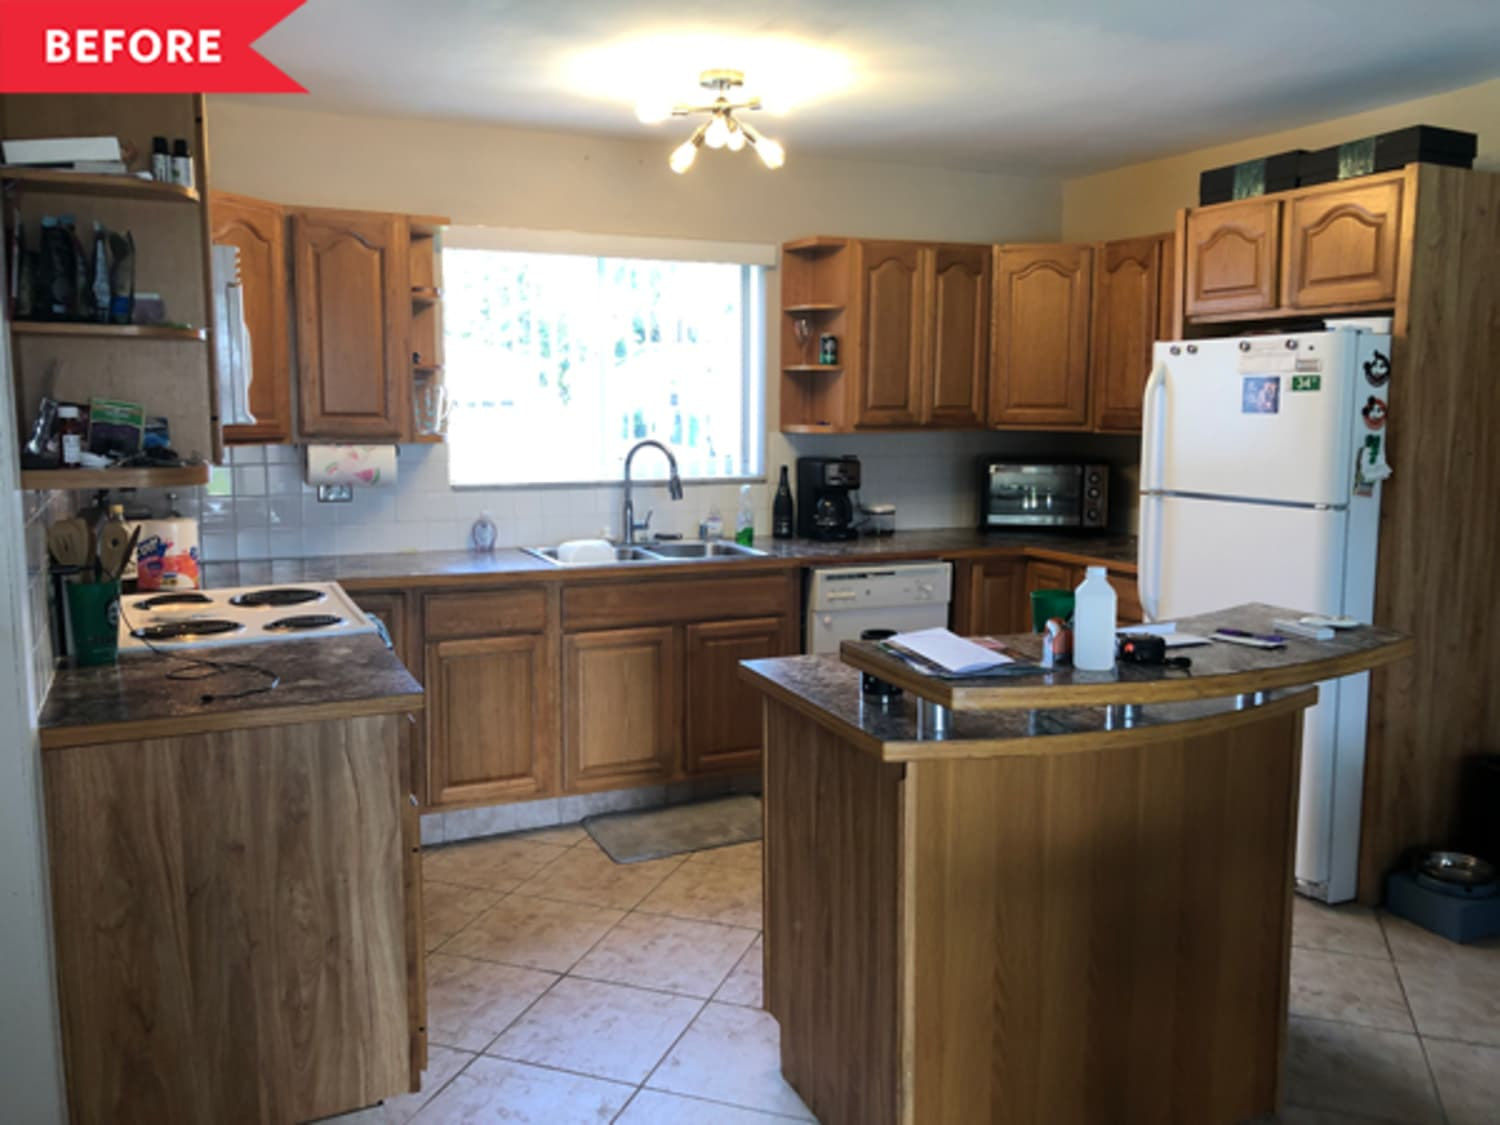 Before and After: This Dark Wood Kitchen Got a Bright White DIY Redo